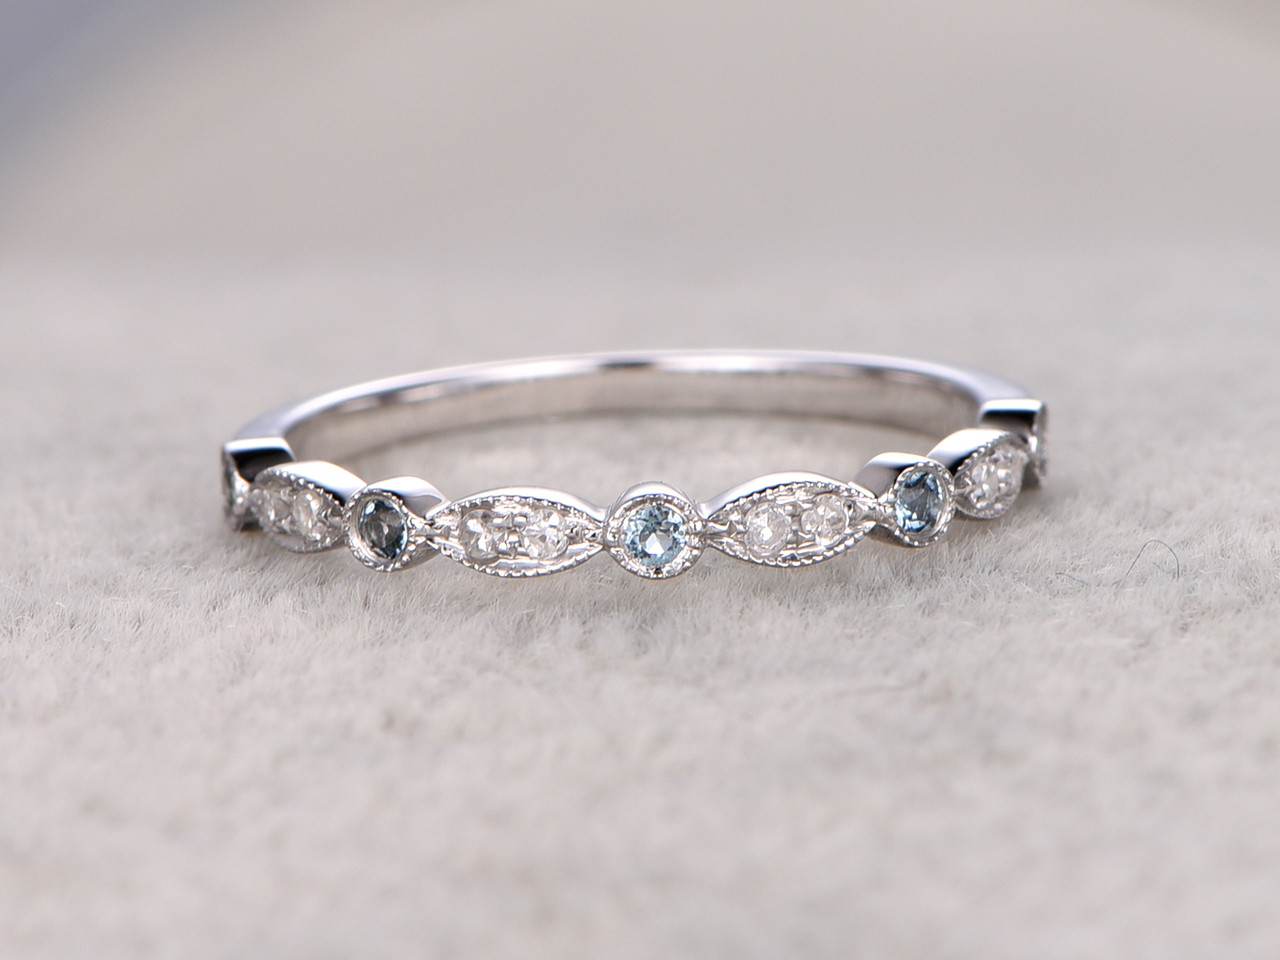 sonara sterling bands large baguette eternity band silver antique cz rings sizes stackable wedding style wholesale ring collections collection